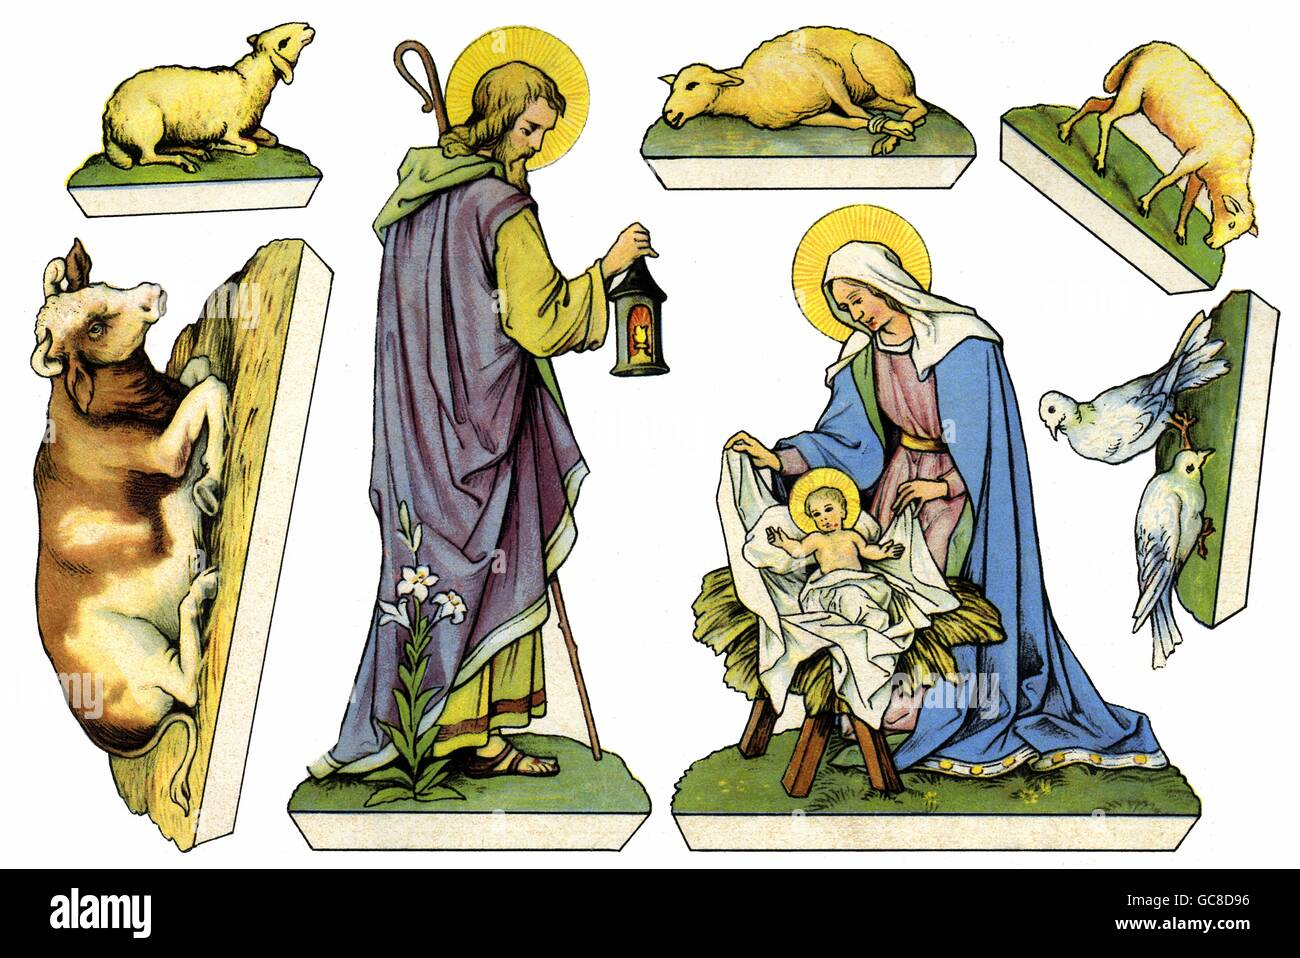 Christmas, cribs, paper cut-out, figures of saints for cut-out, small stand-up nativity scene, Germany, circa 1926, Stock Photo